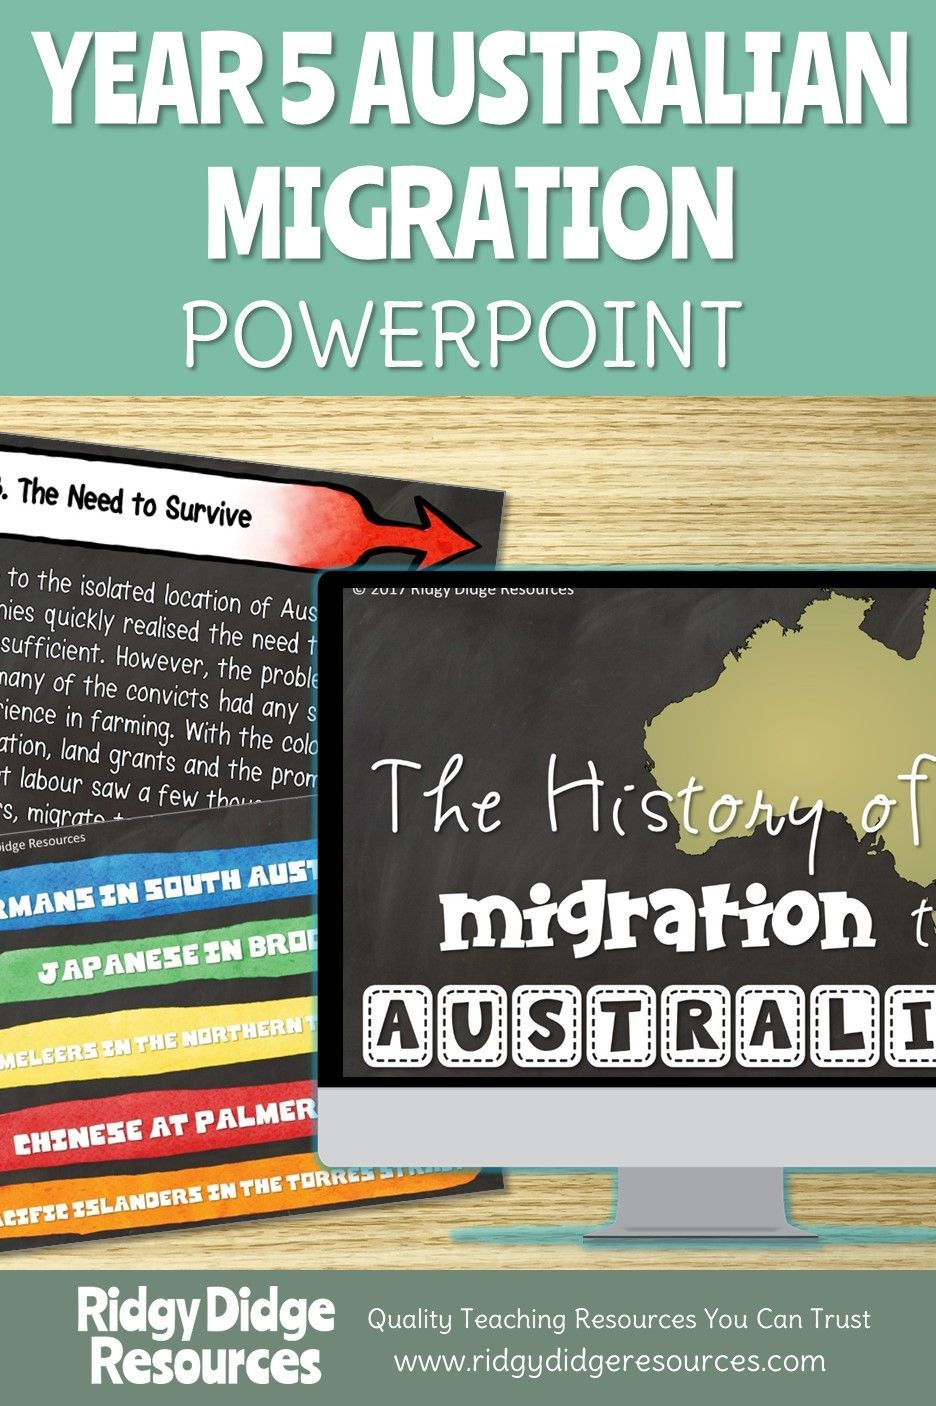 Year 5 Migration to Australia Informative Powerpoint and